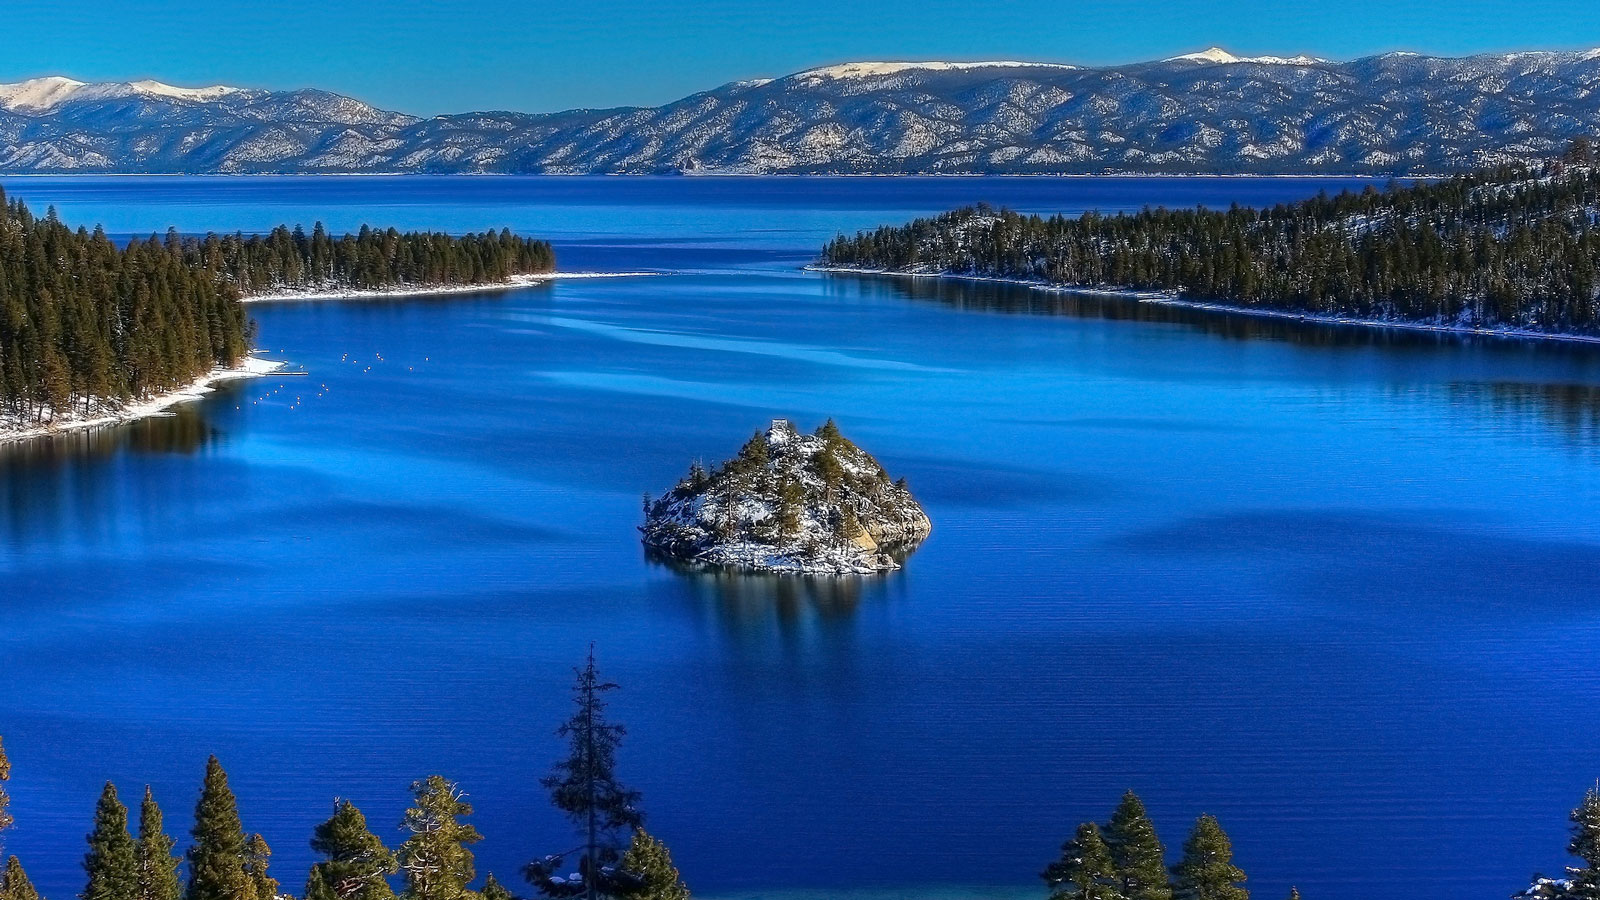 Crater lake quotes